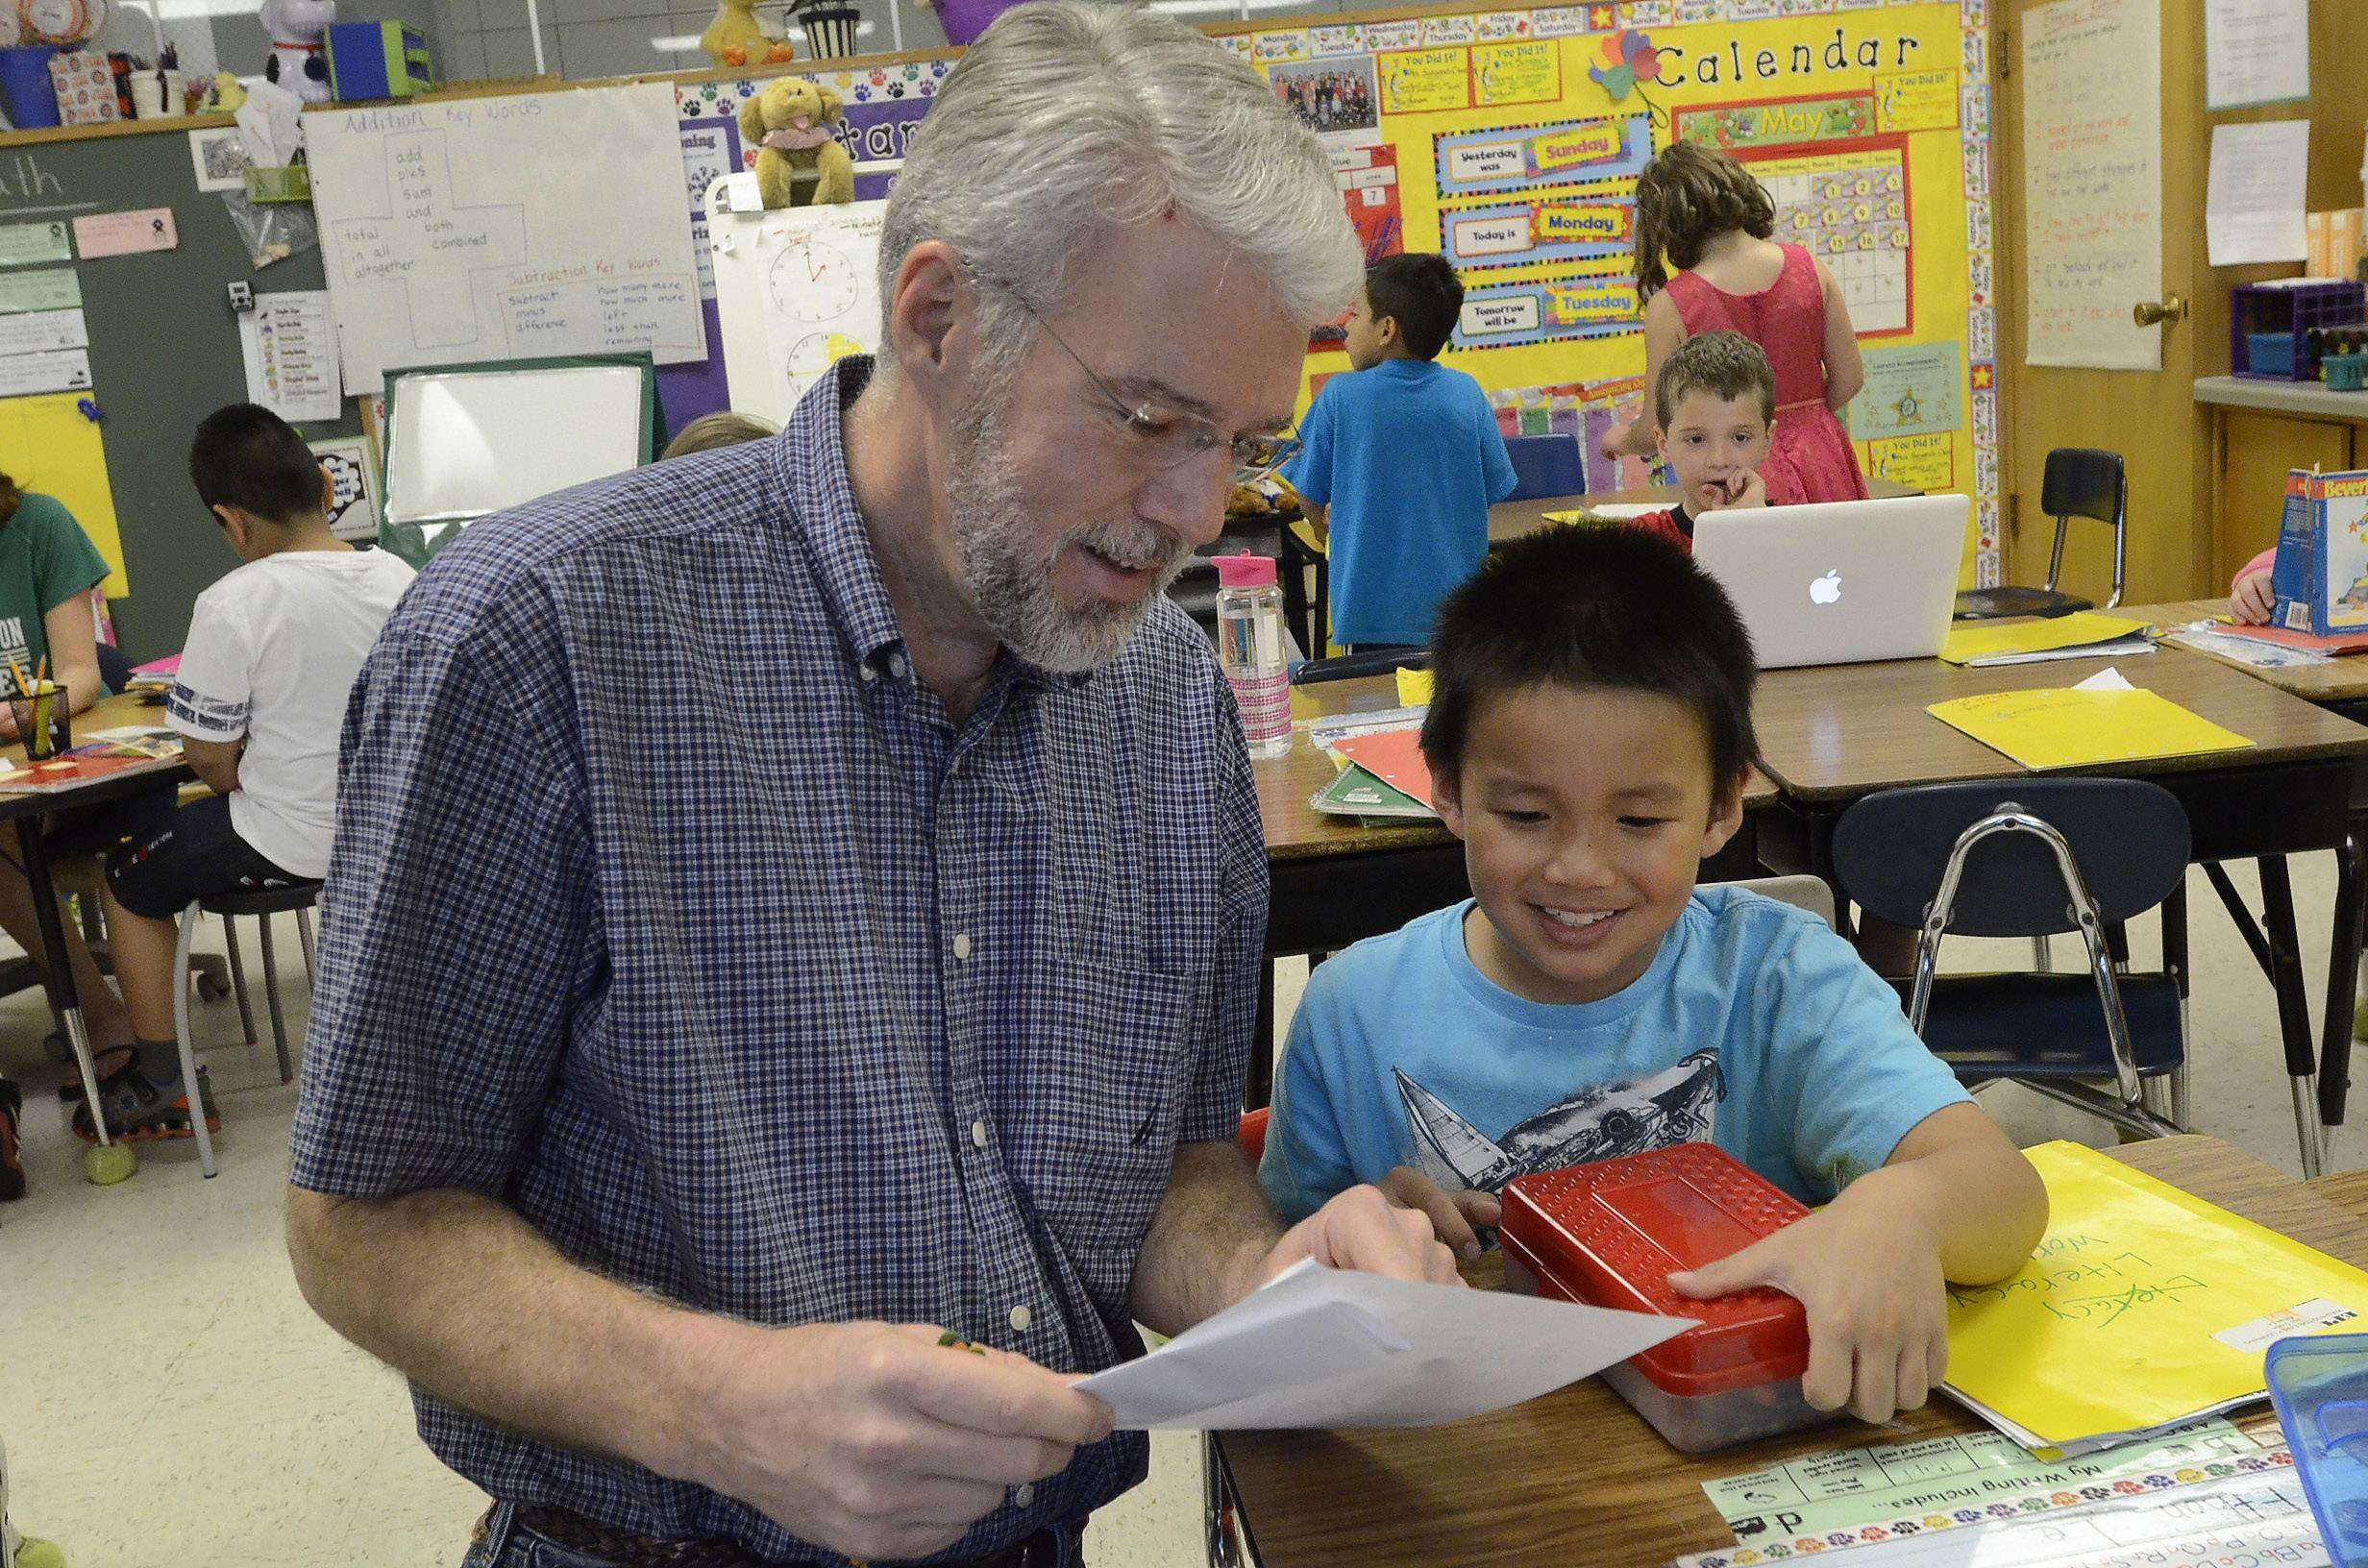 Moving Picture: Mundelein school kids call him 'Grandpa'